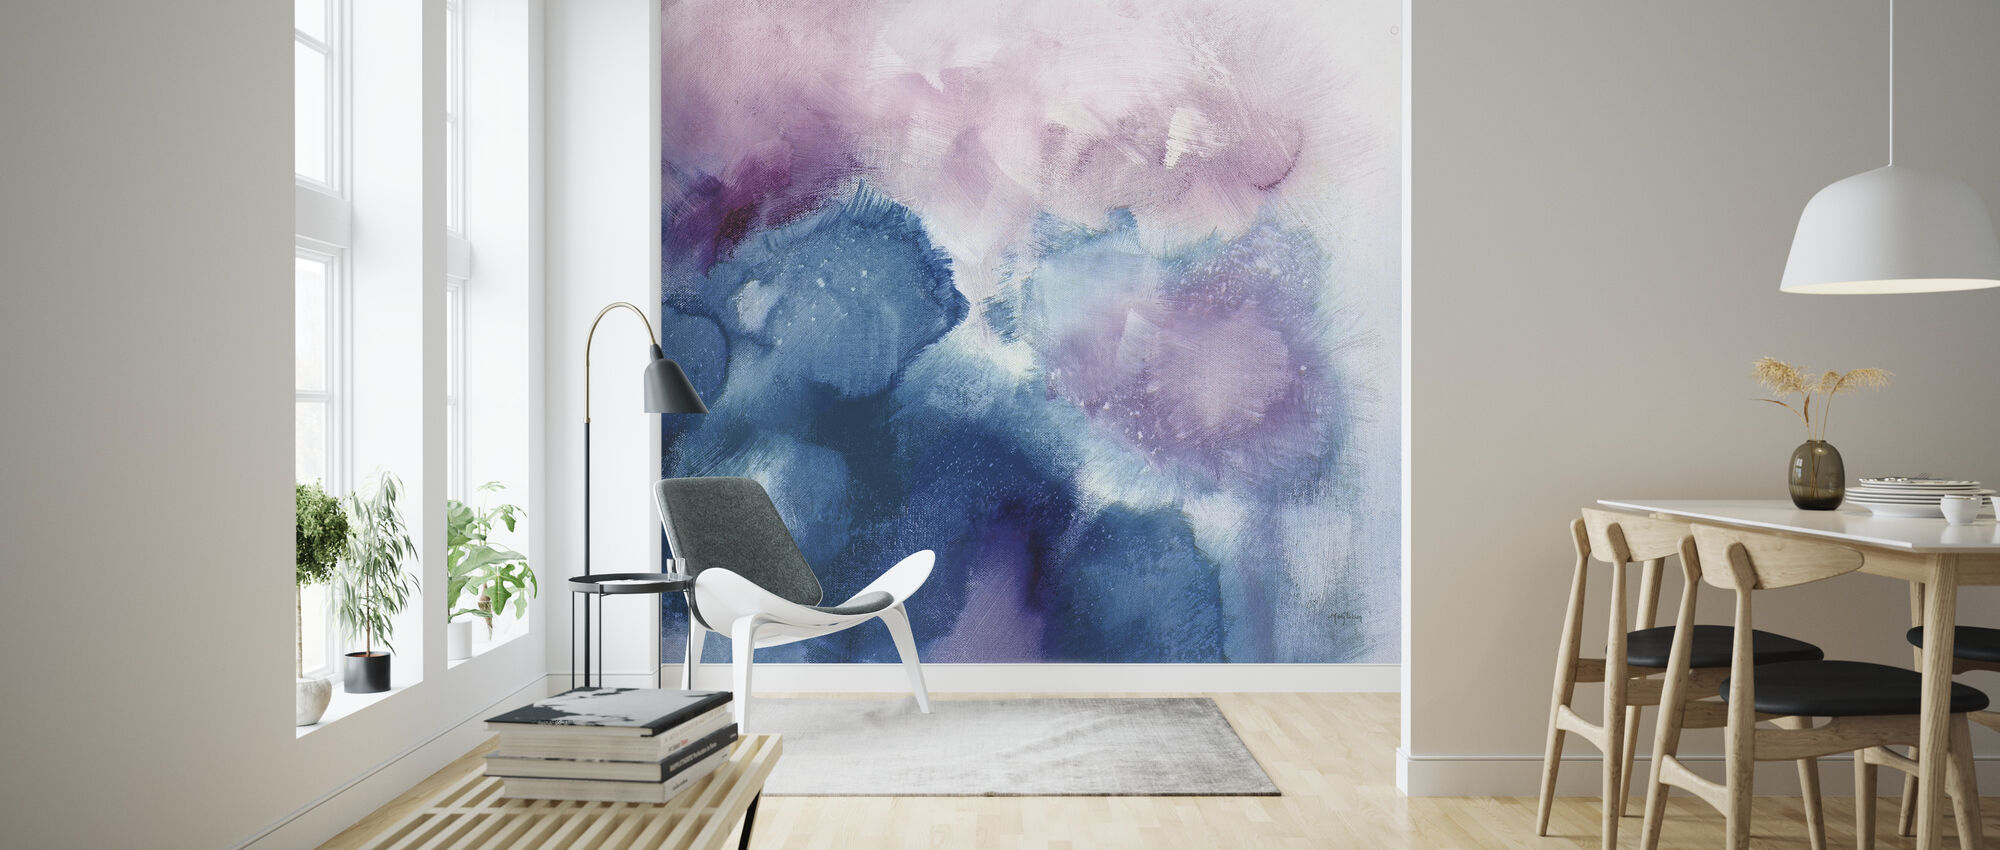 Nebula - Wallpaper - Living Room